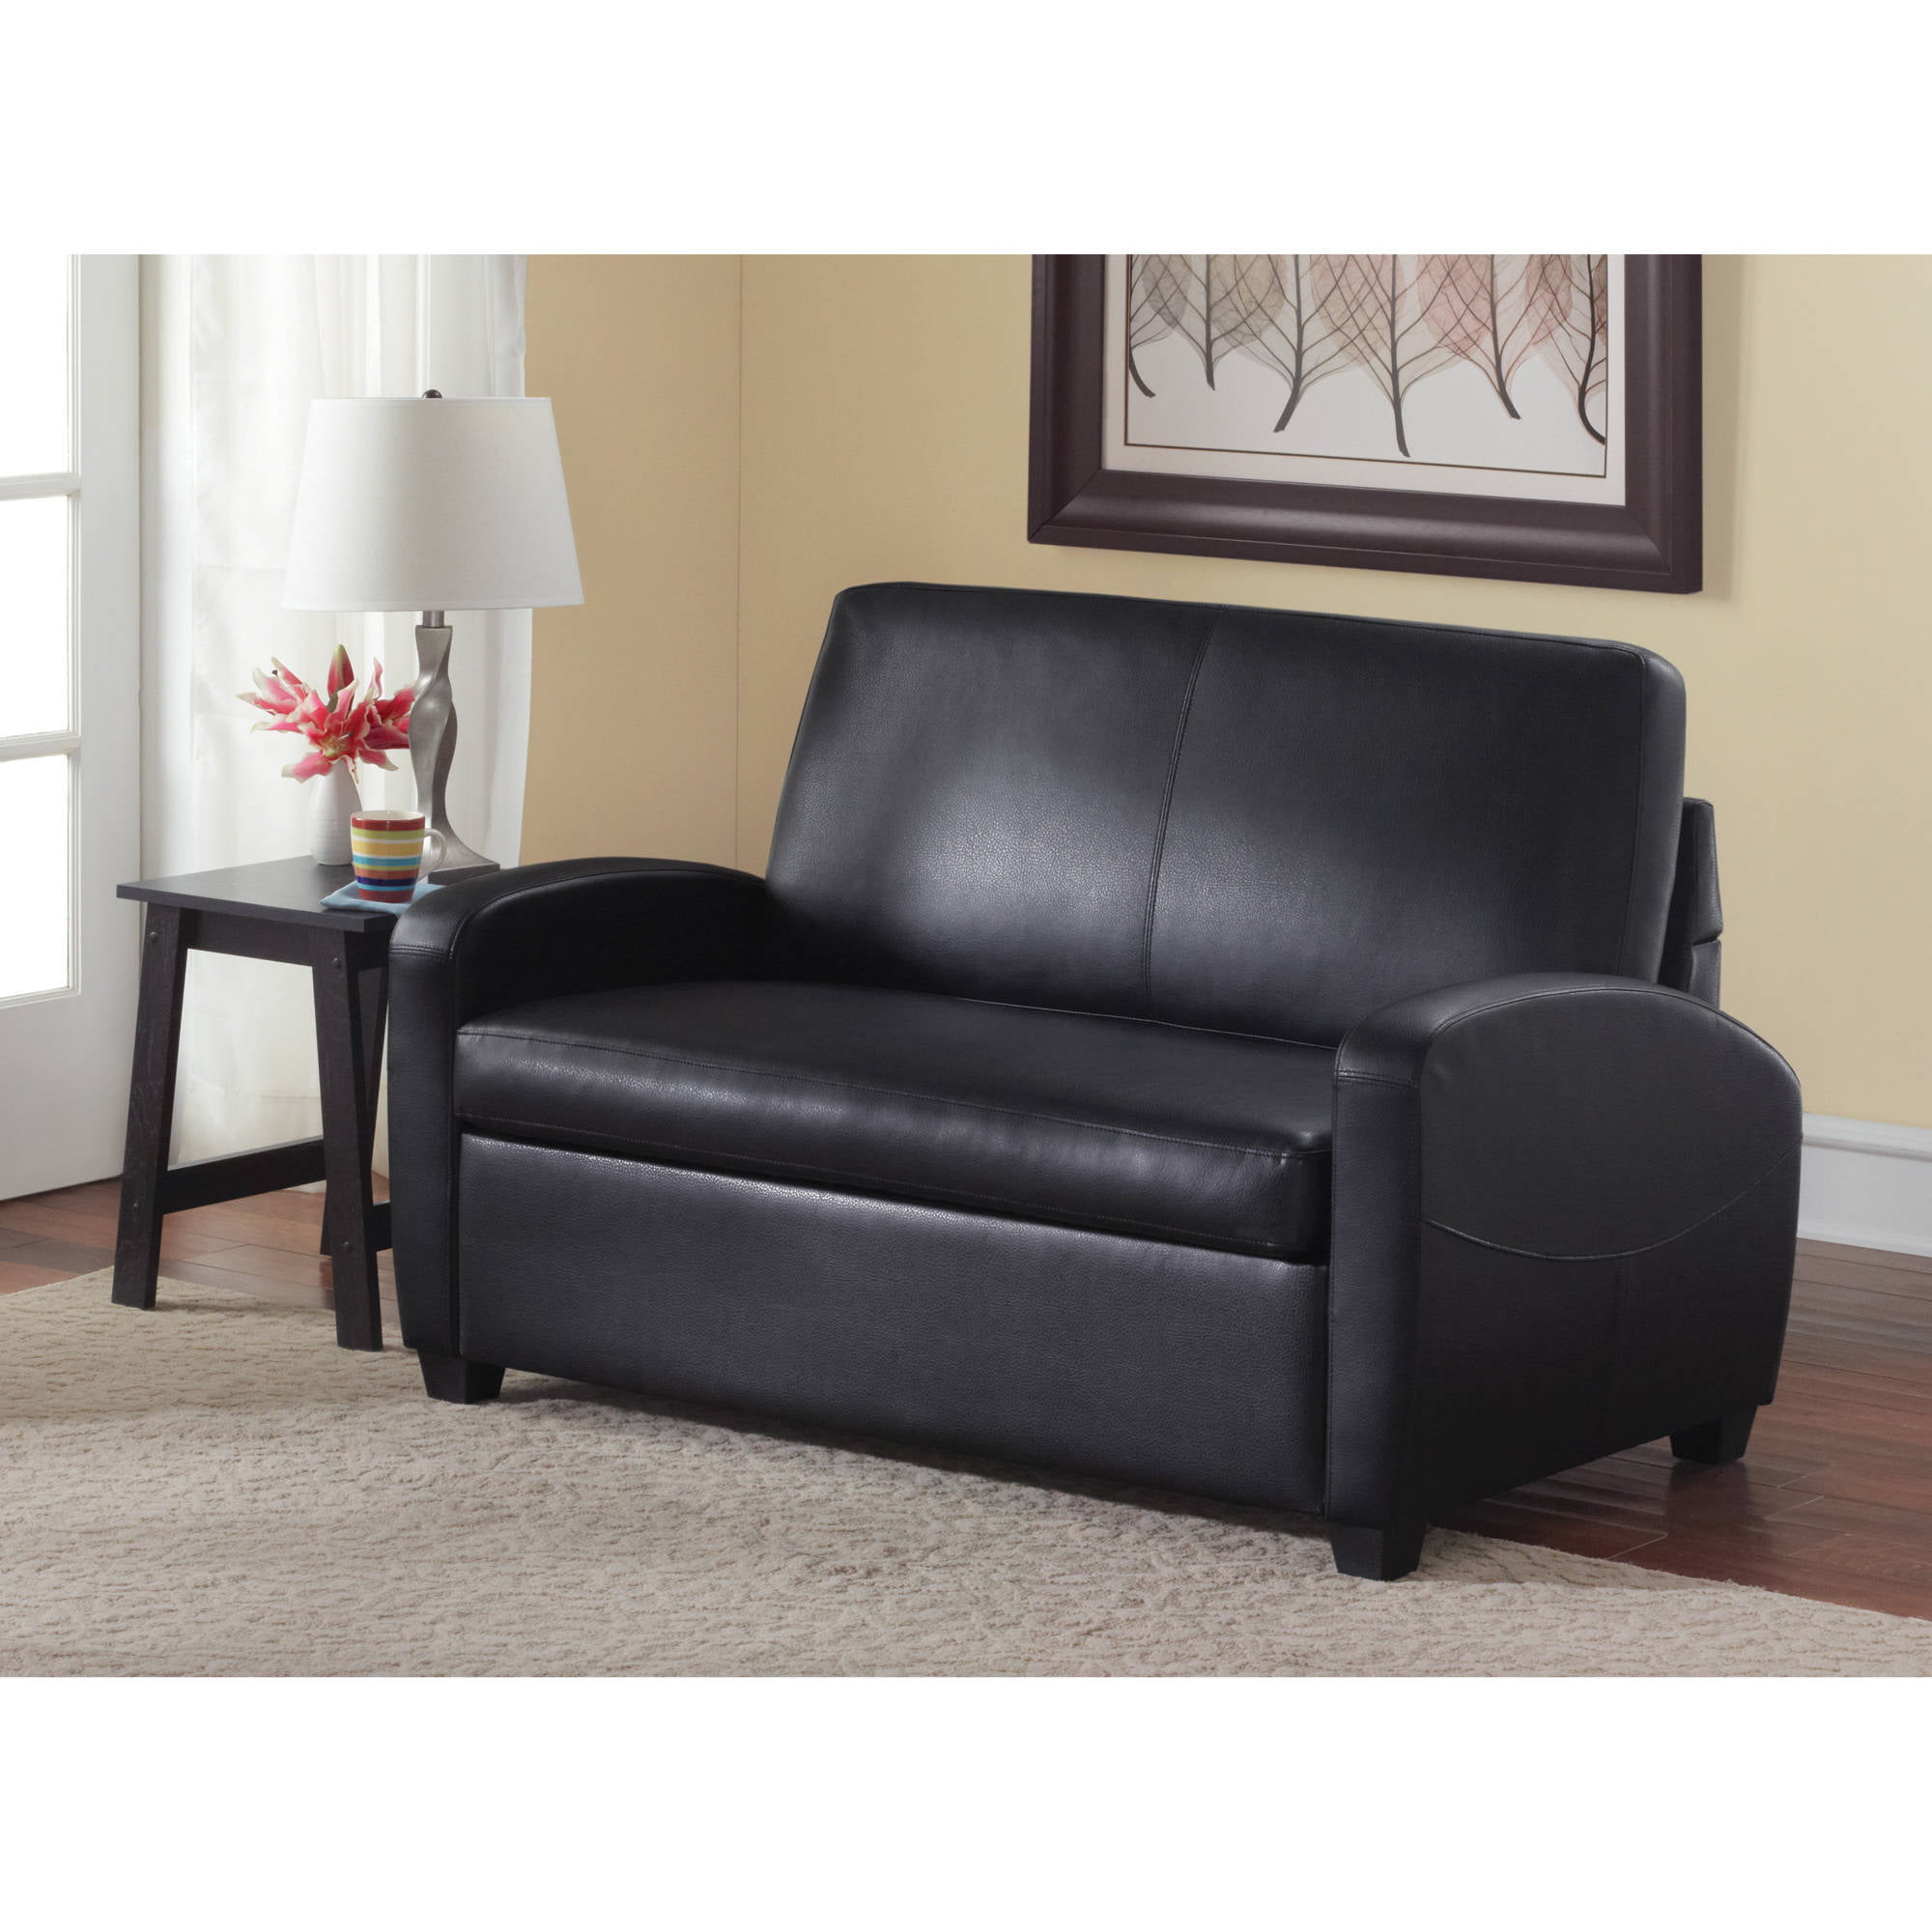 Mainstays 54 Loveseat Sleeper Black Walmartcom